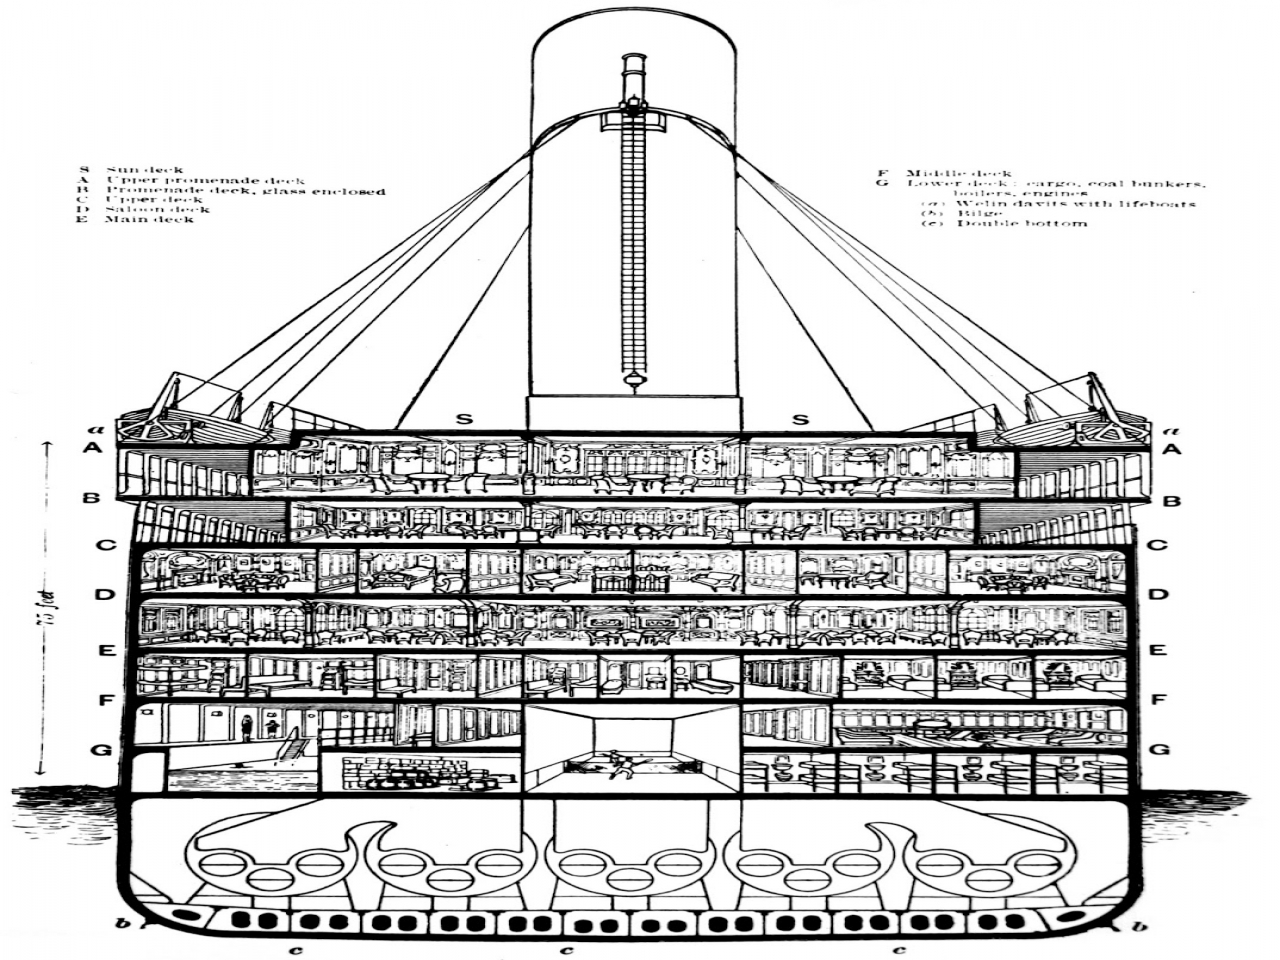 Titanic Cutaway Diagram Ship Cutaway Views Decks On A